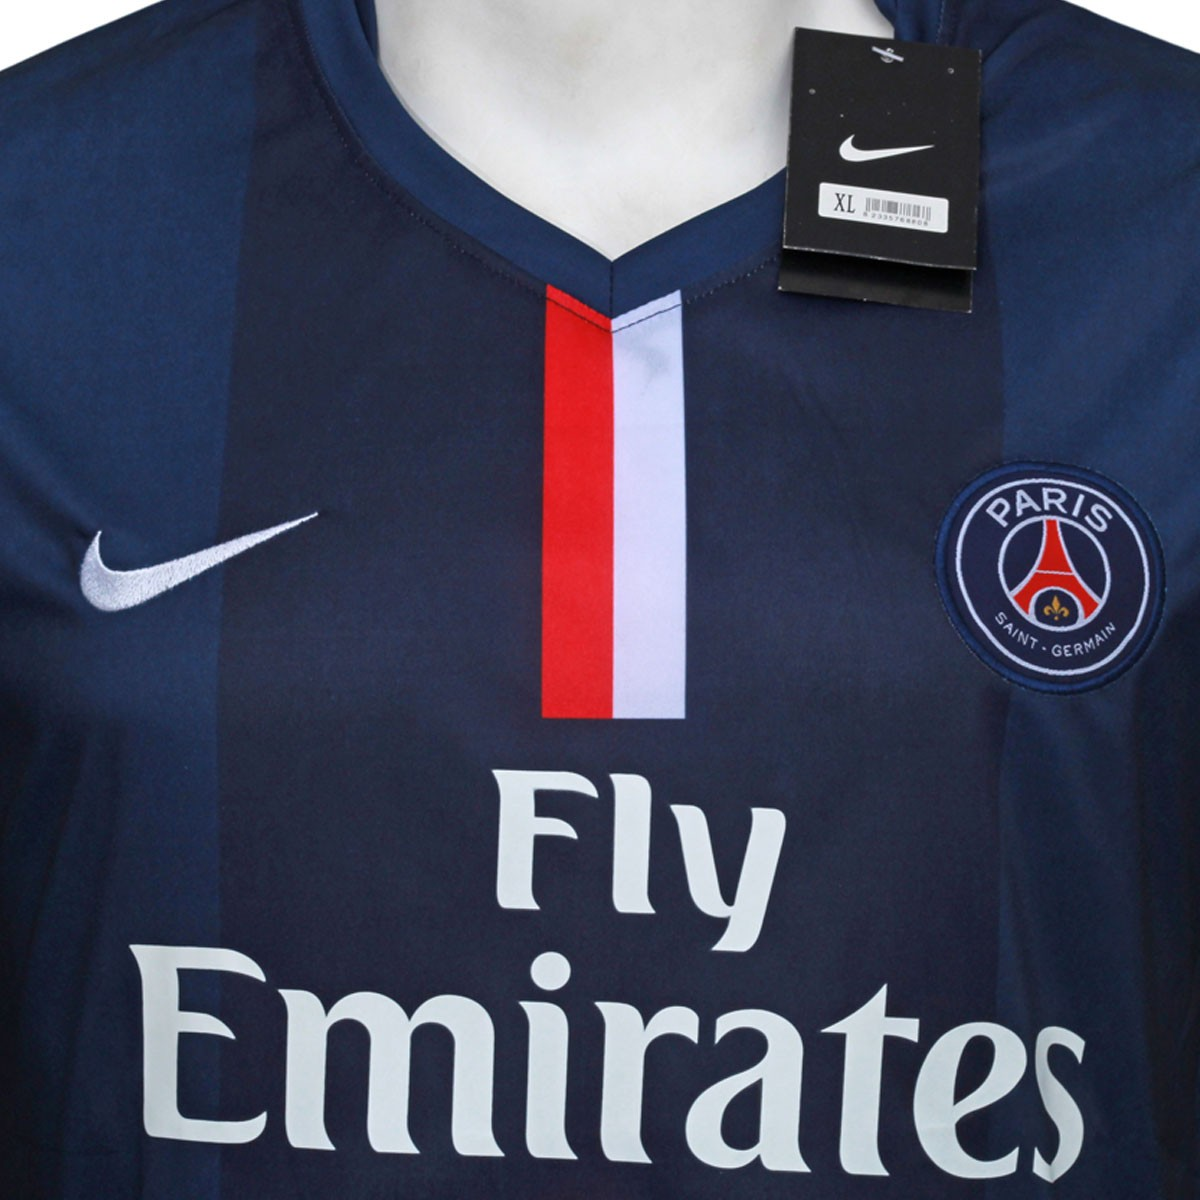 ... Paris Saint Germany Home Shirt 2014 - 2015 lightbox moreview ... a2dd41952